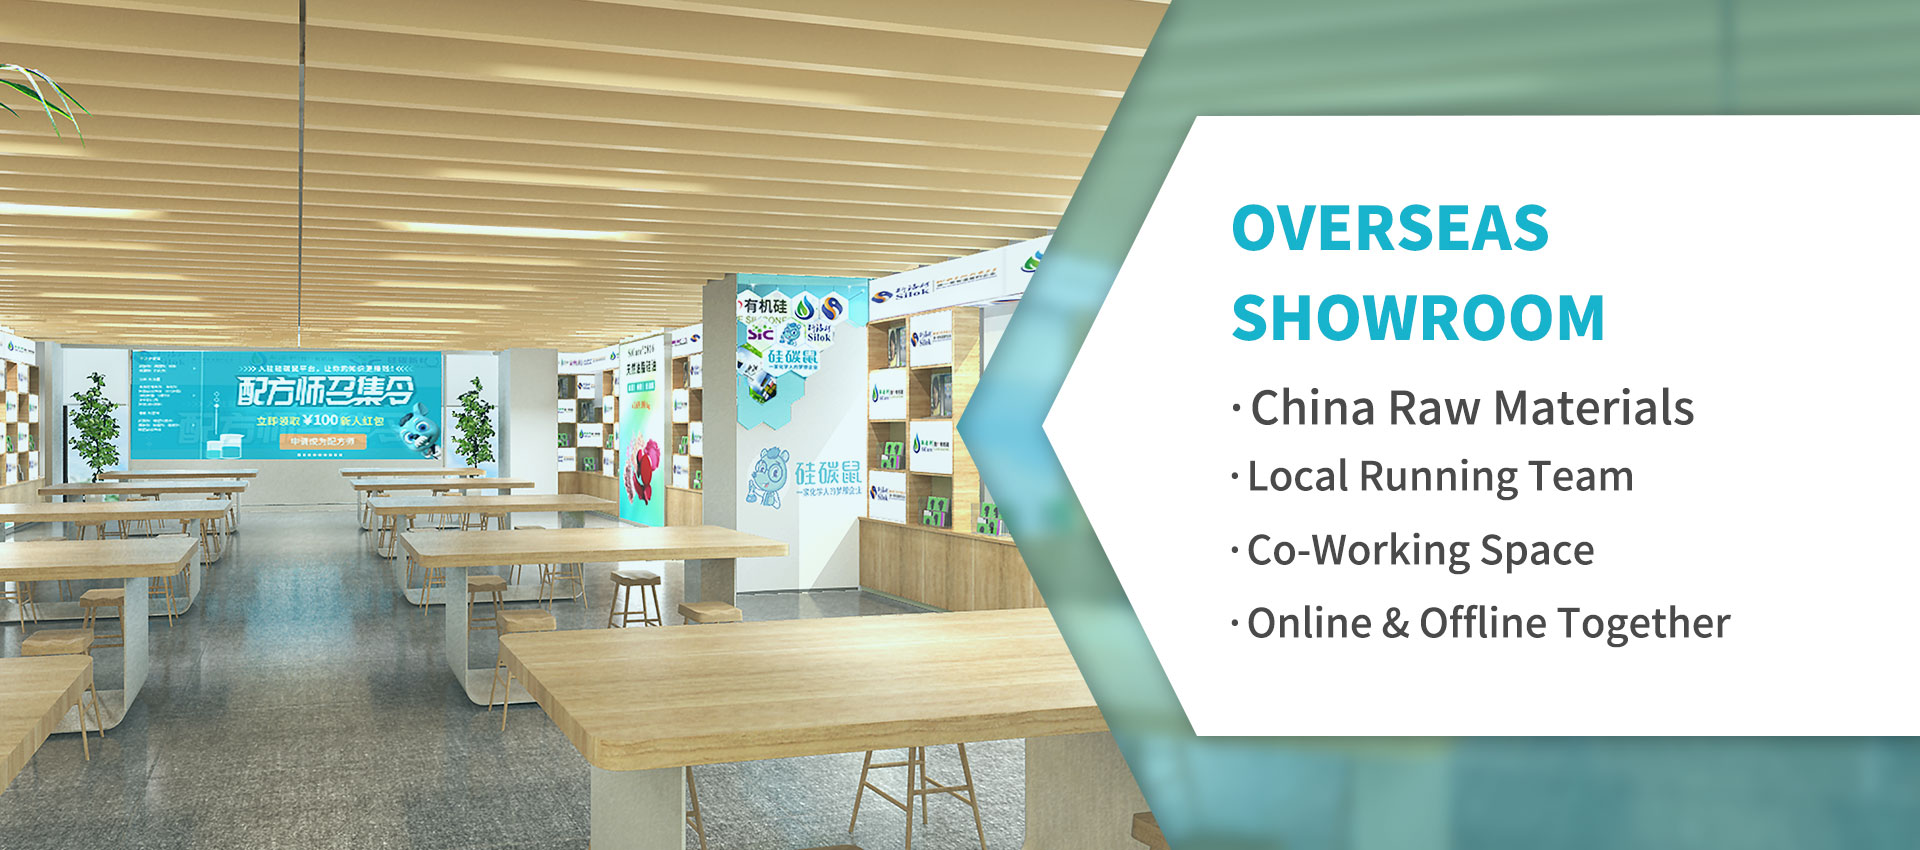 Overseas Showroom